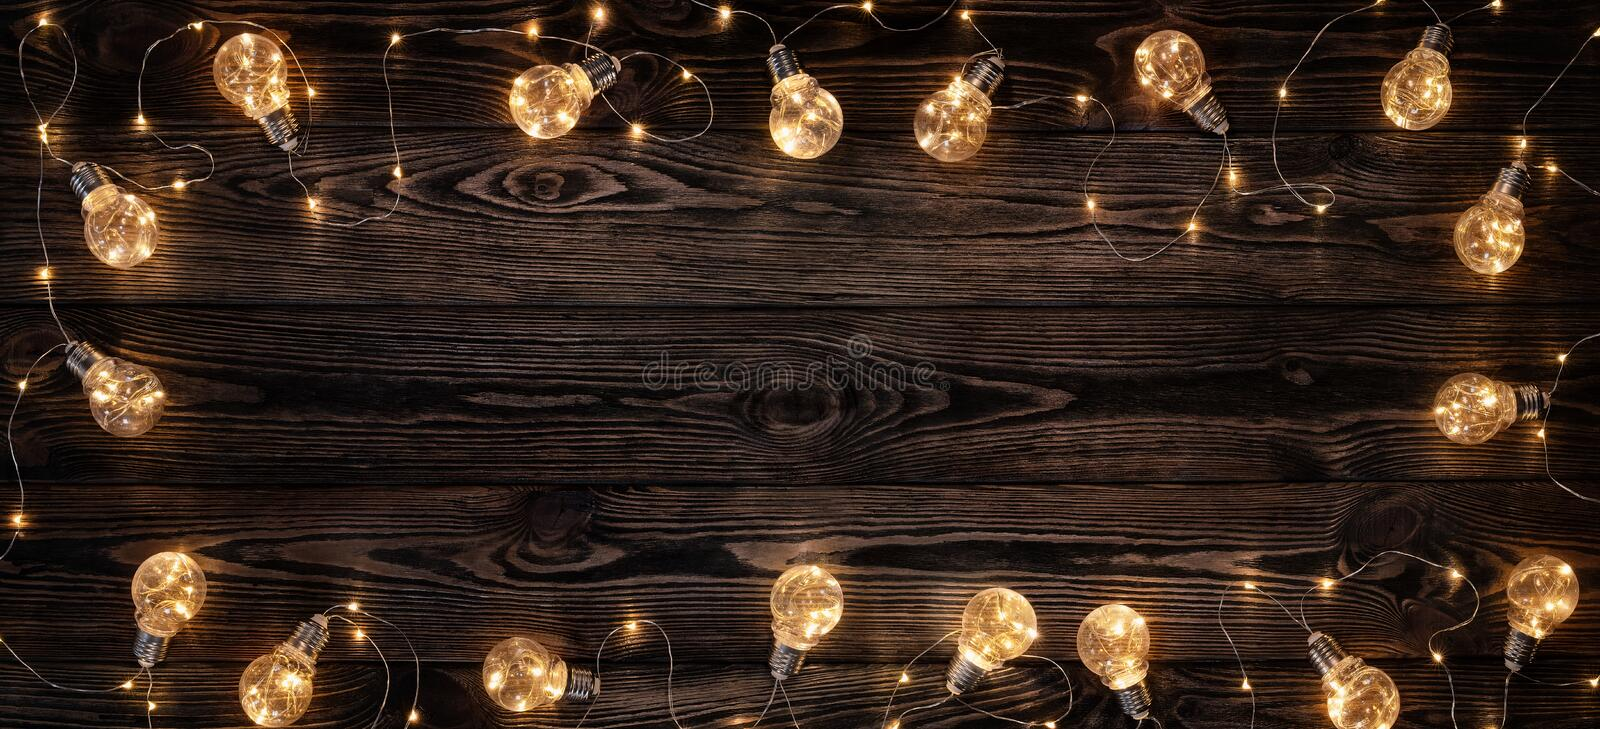 Wooden background illuminated by retro light bulbs stock photography